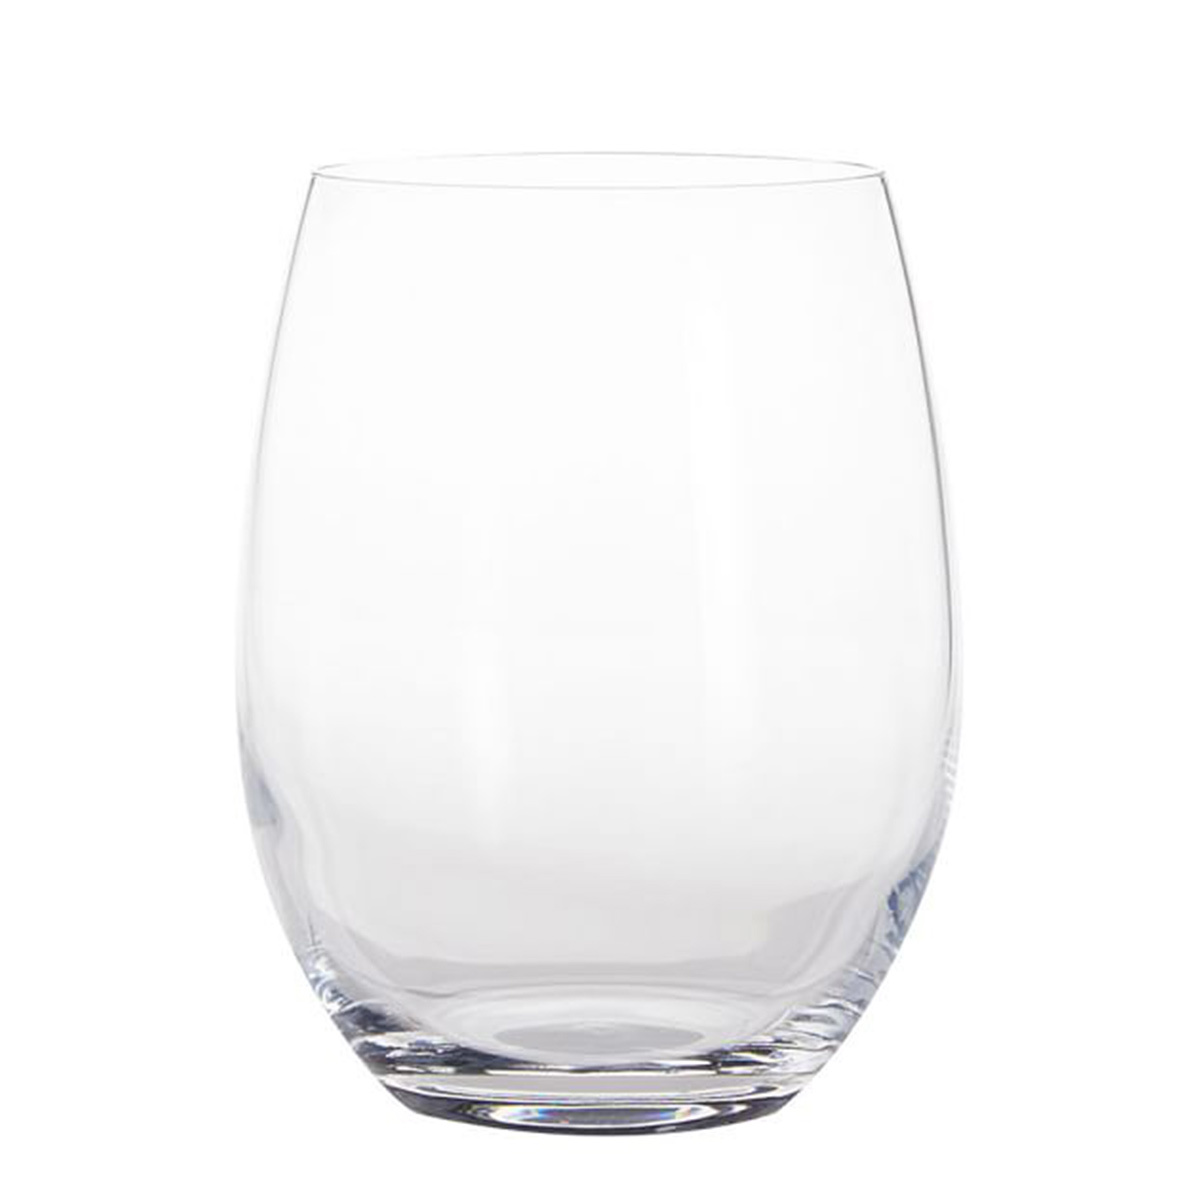 Small, chip-resistant wine glass photo